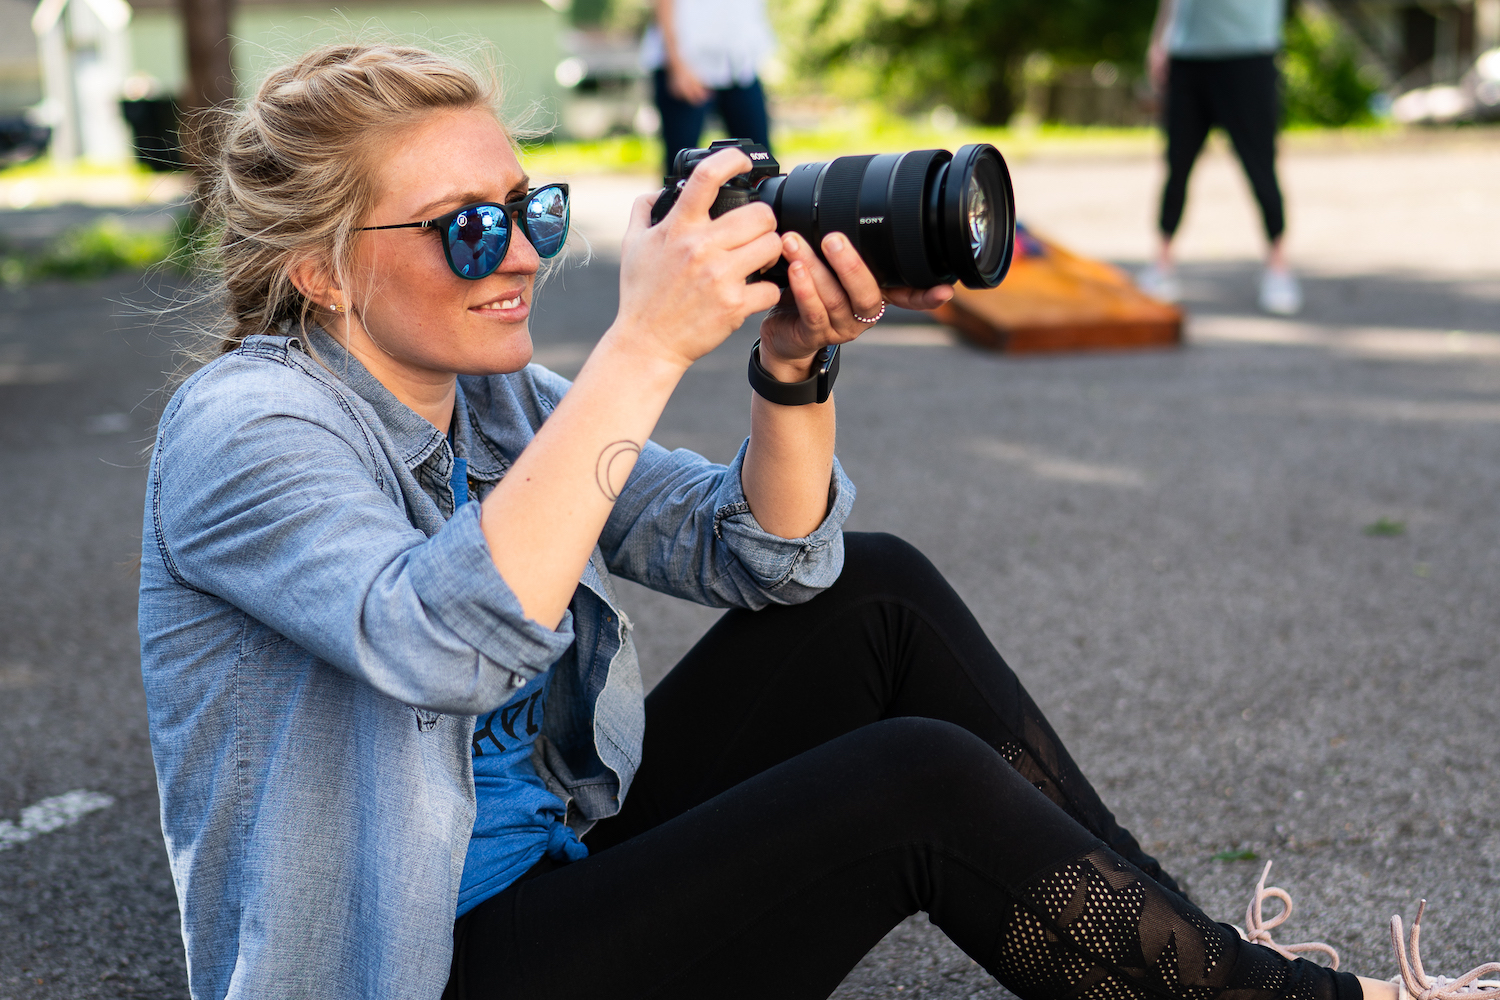 girl sitting down and taking a picture with a camera